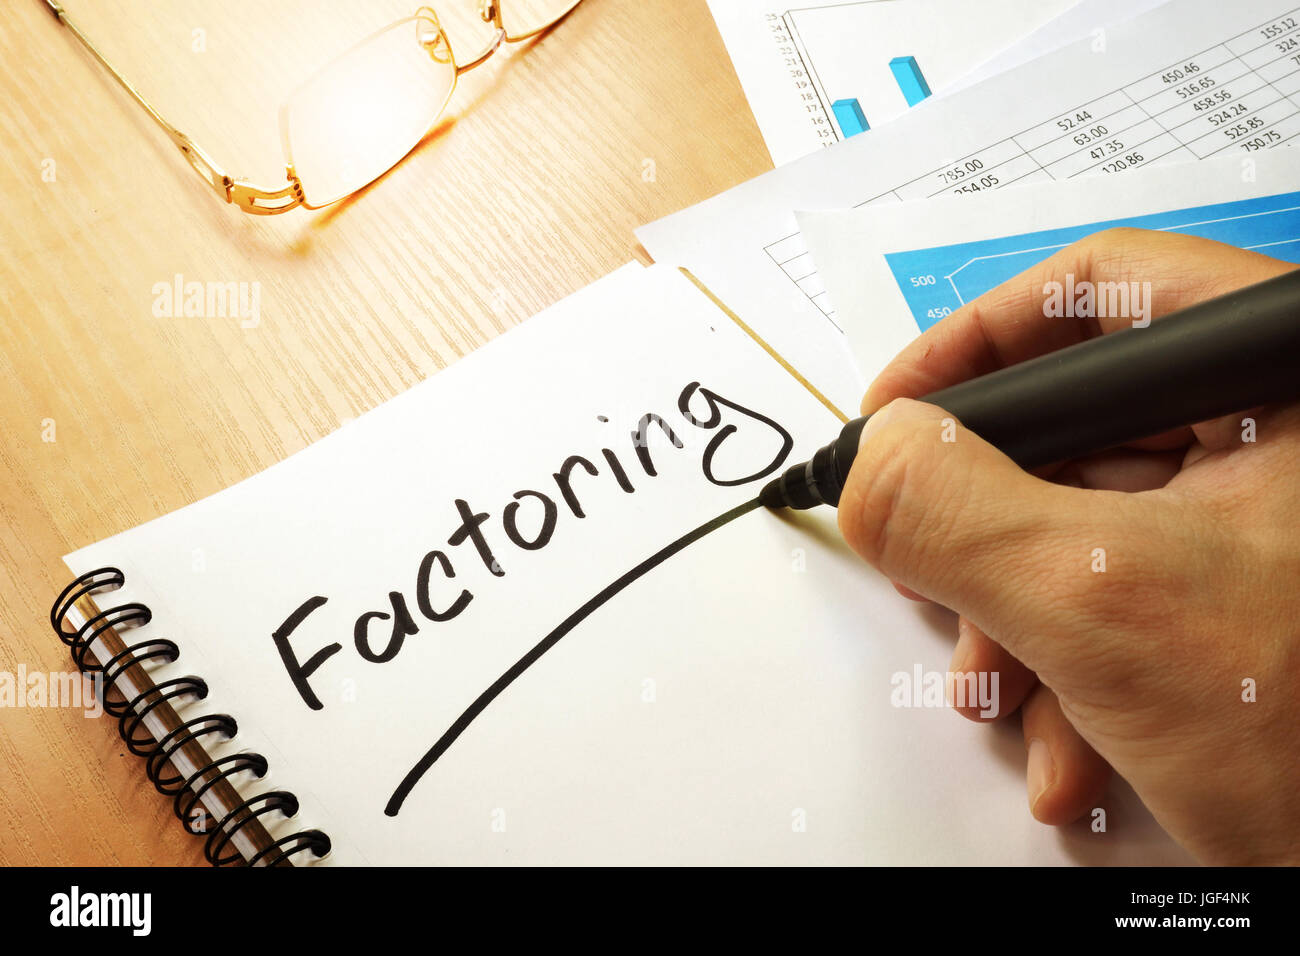 Factoring written by hand in a note. - Stock Image